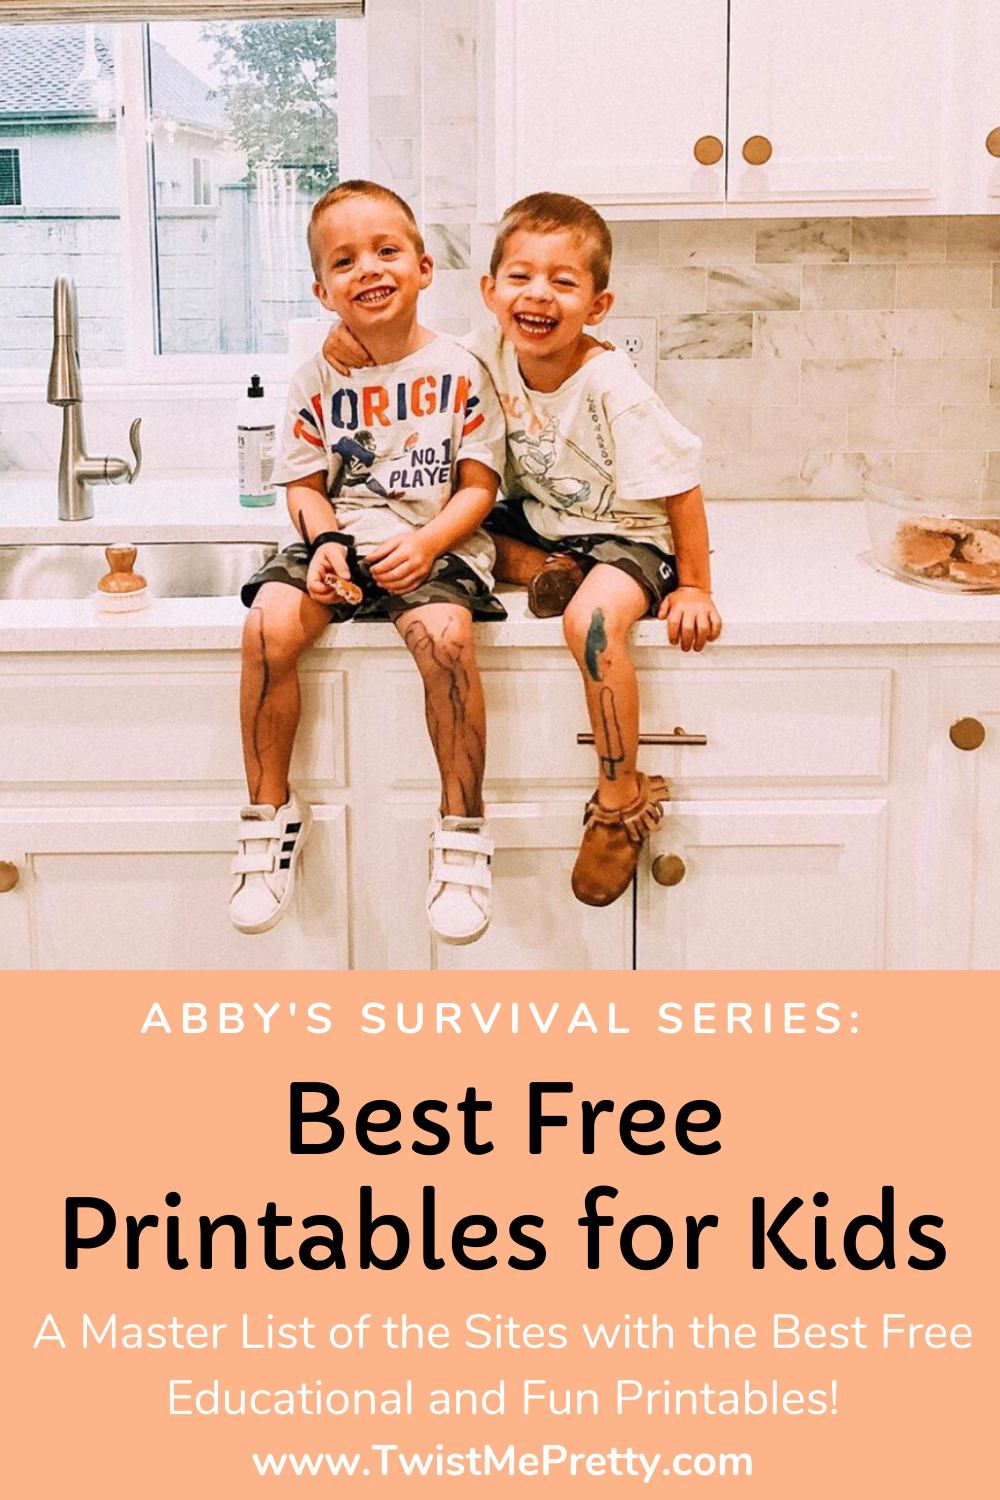 Abby's Survival Series- Best Free Printables for Kids. www.TwistMePretty.com